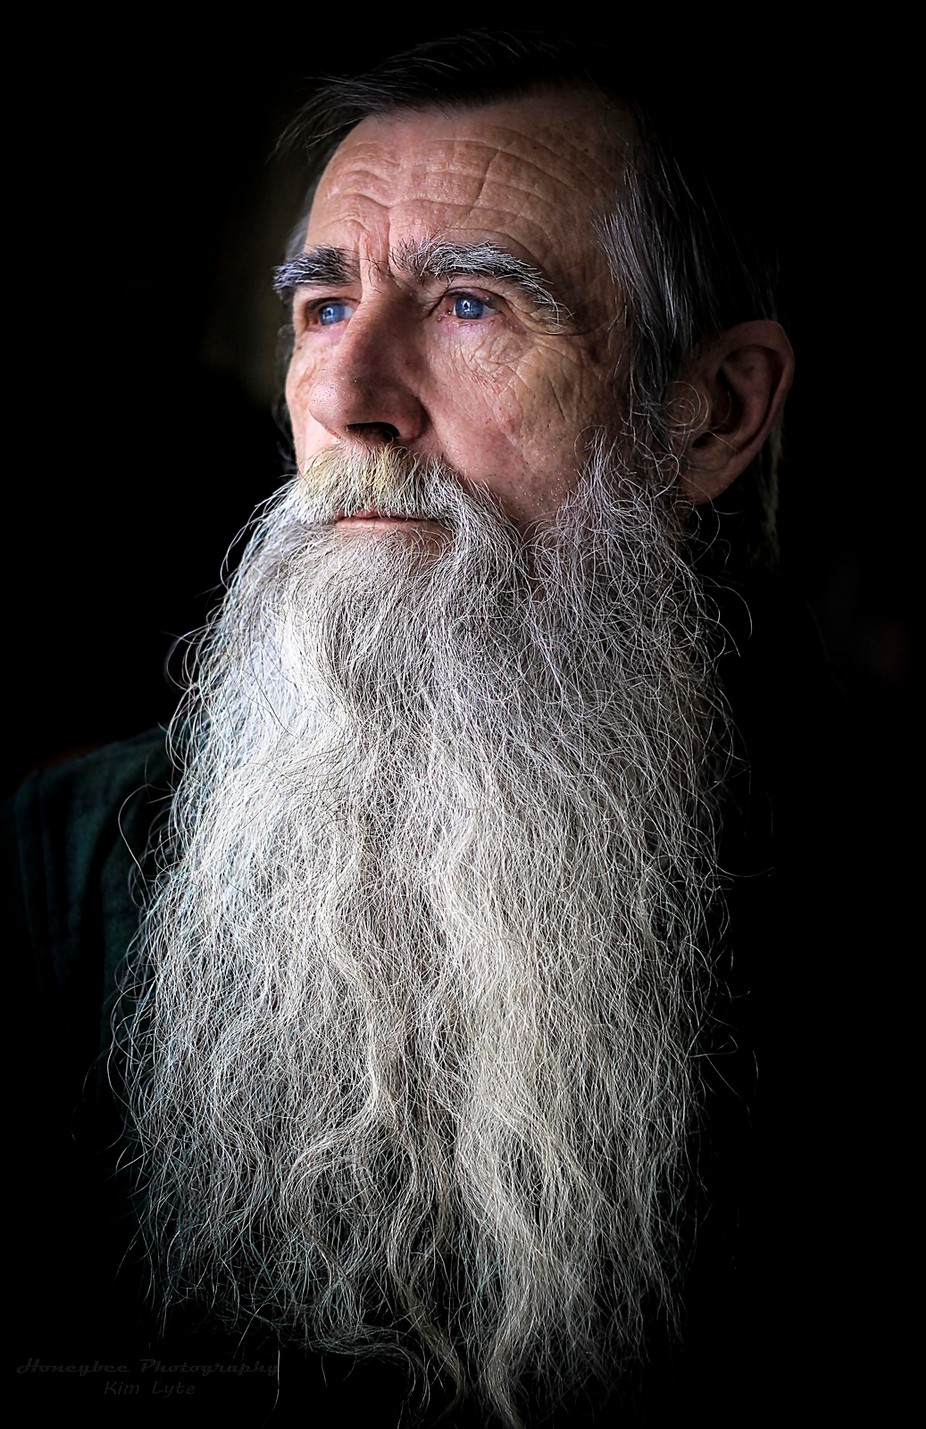 Simple Man by honeybeebabee - Beards and Mustaches Photo Contest